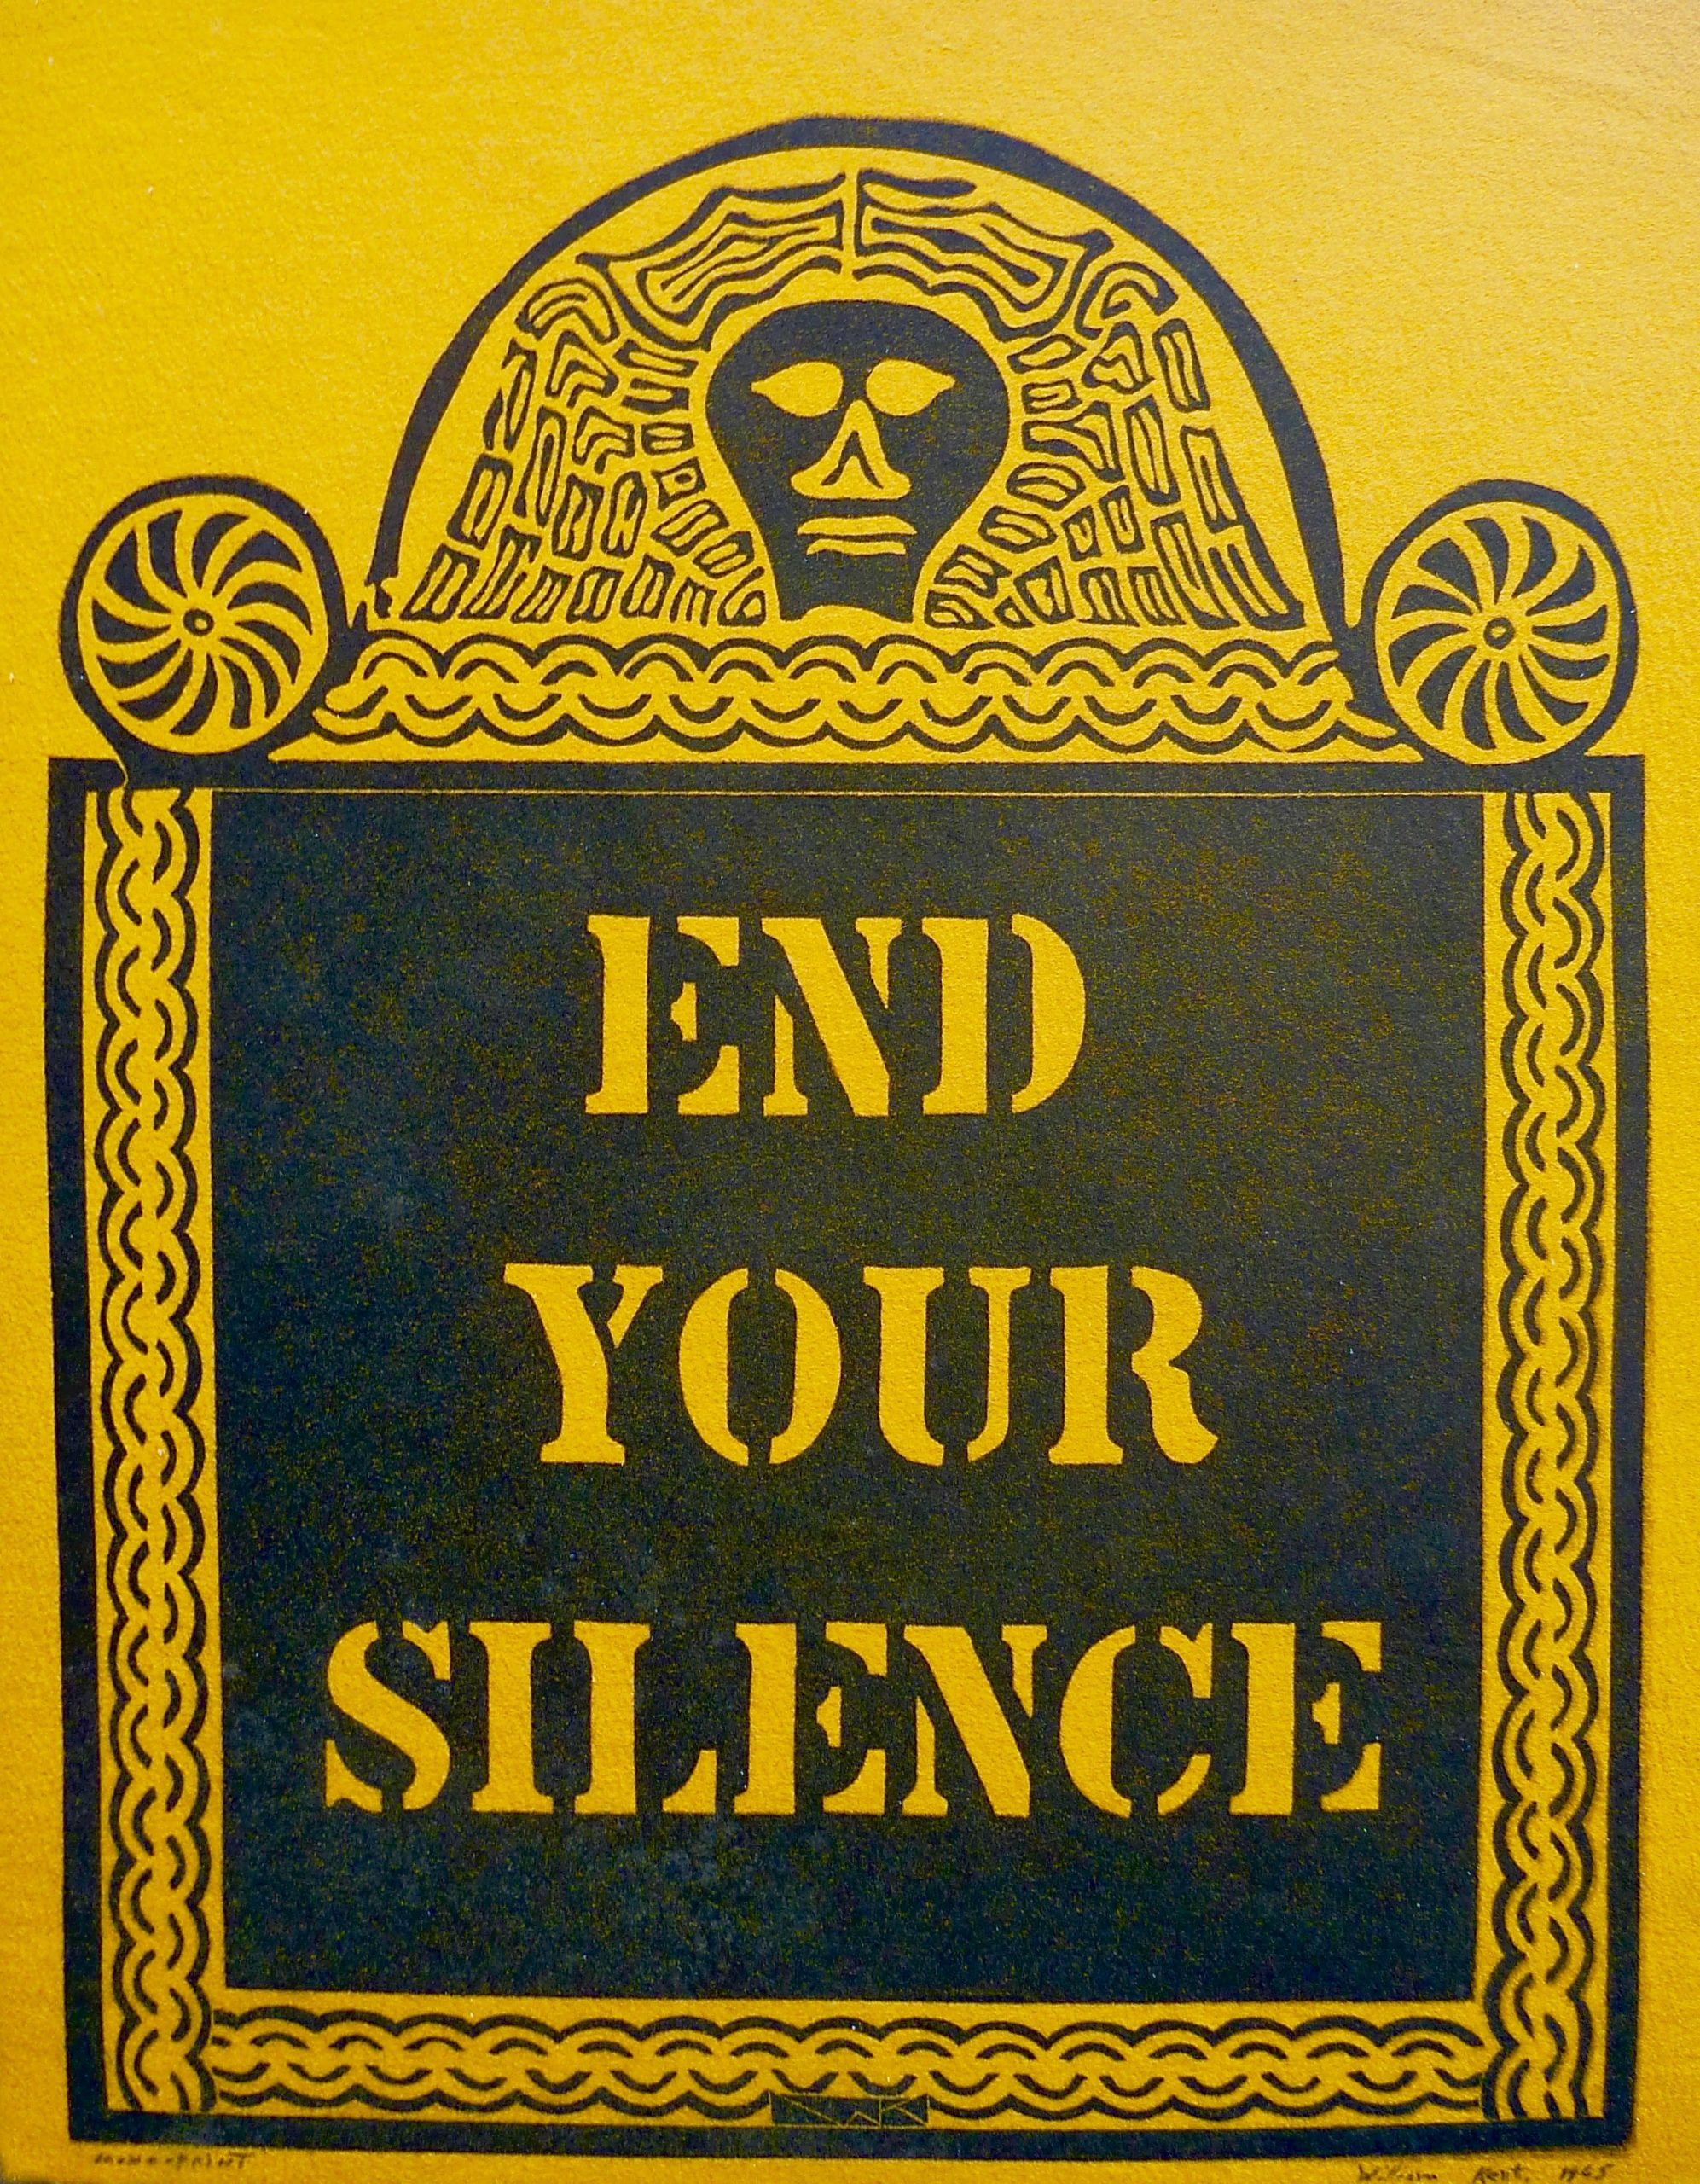 End Your Silence by William Kent